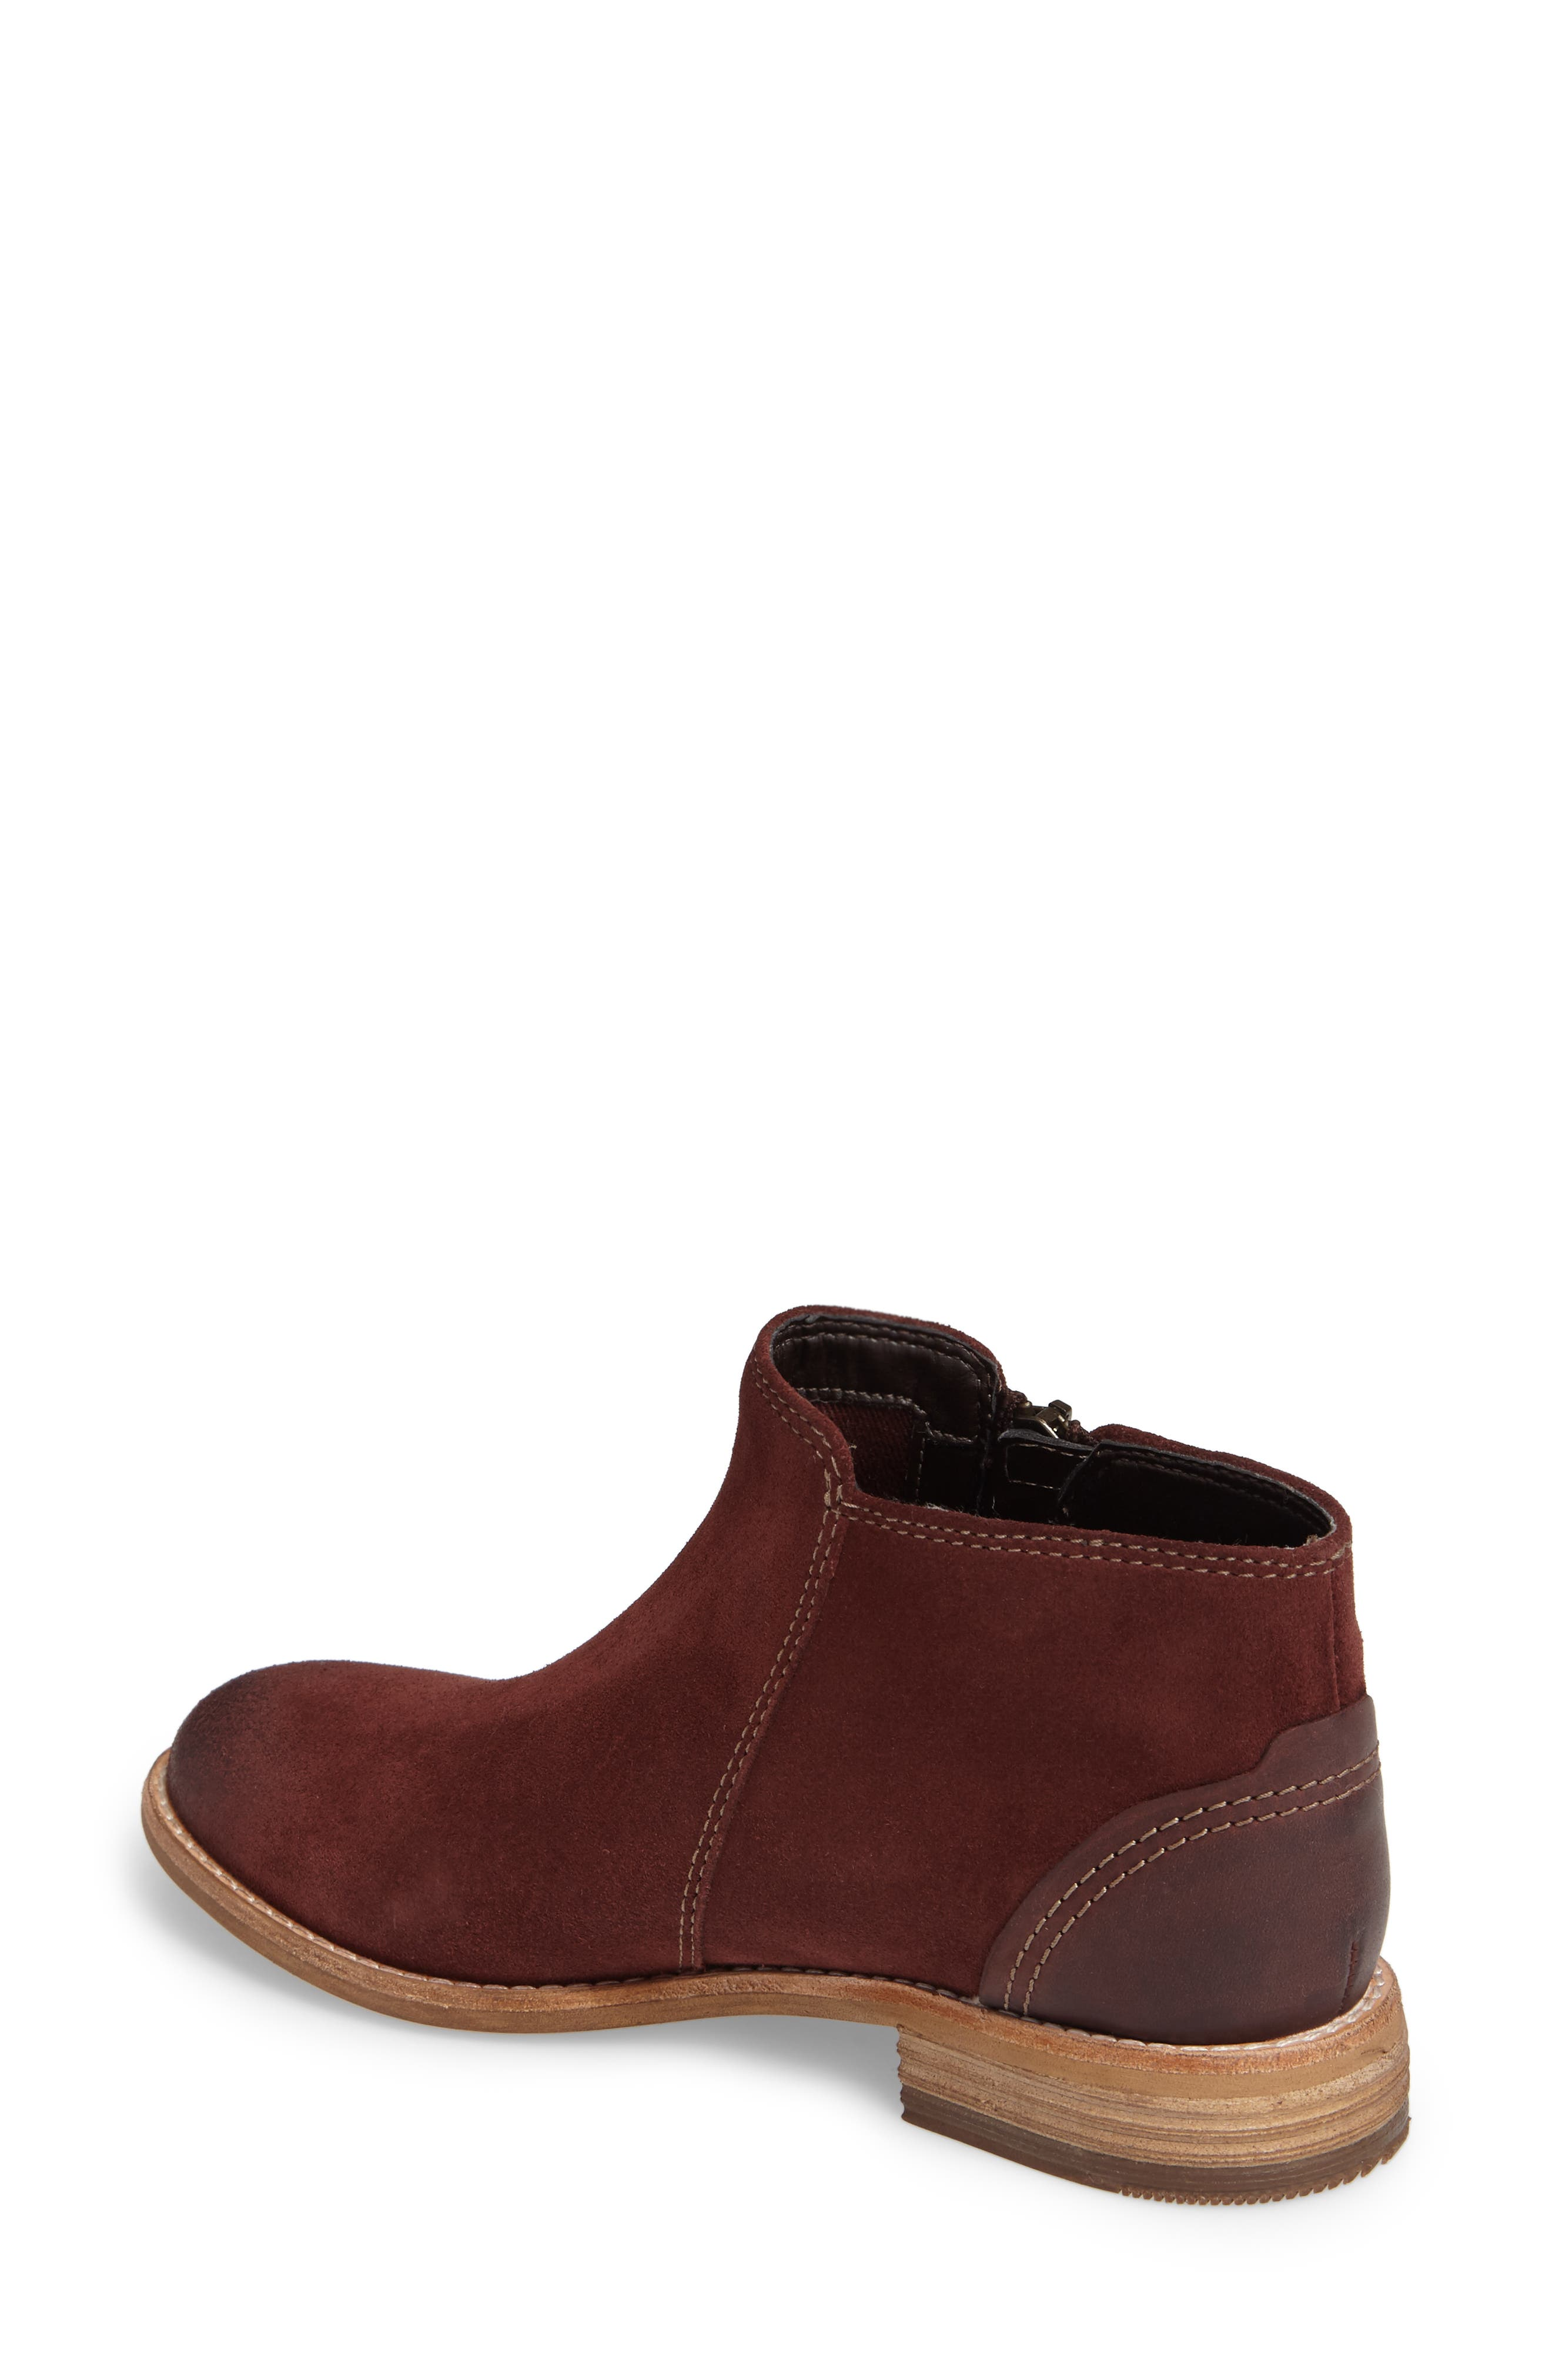 CLARKS<SUP>®</SUP>, Maypearl Juno Ankle Boot, Alternate thumbnail 2, color, MAHOGANY SUEDE